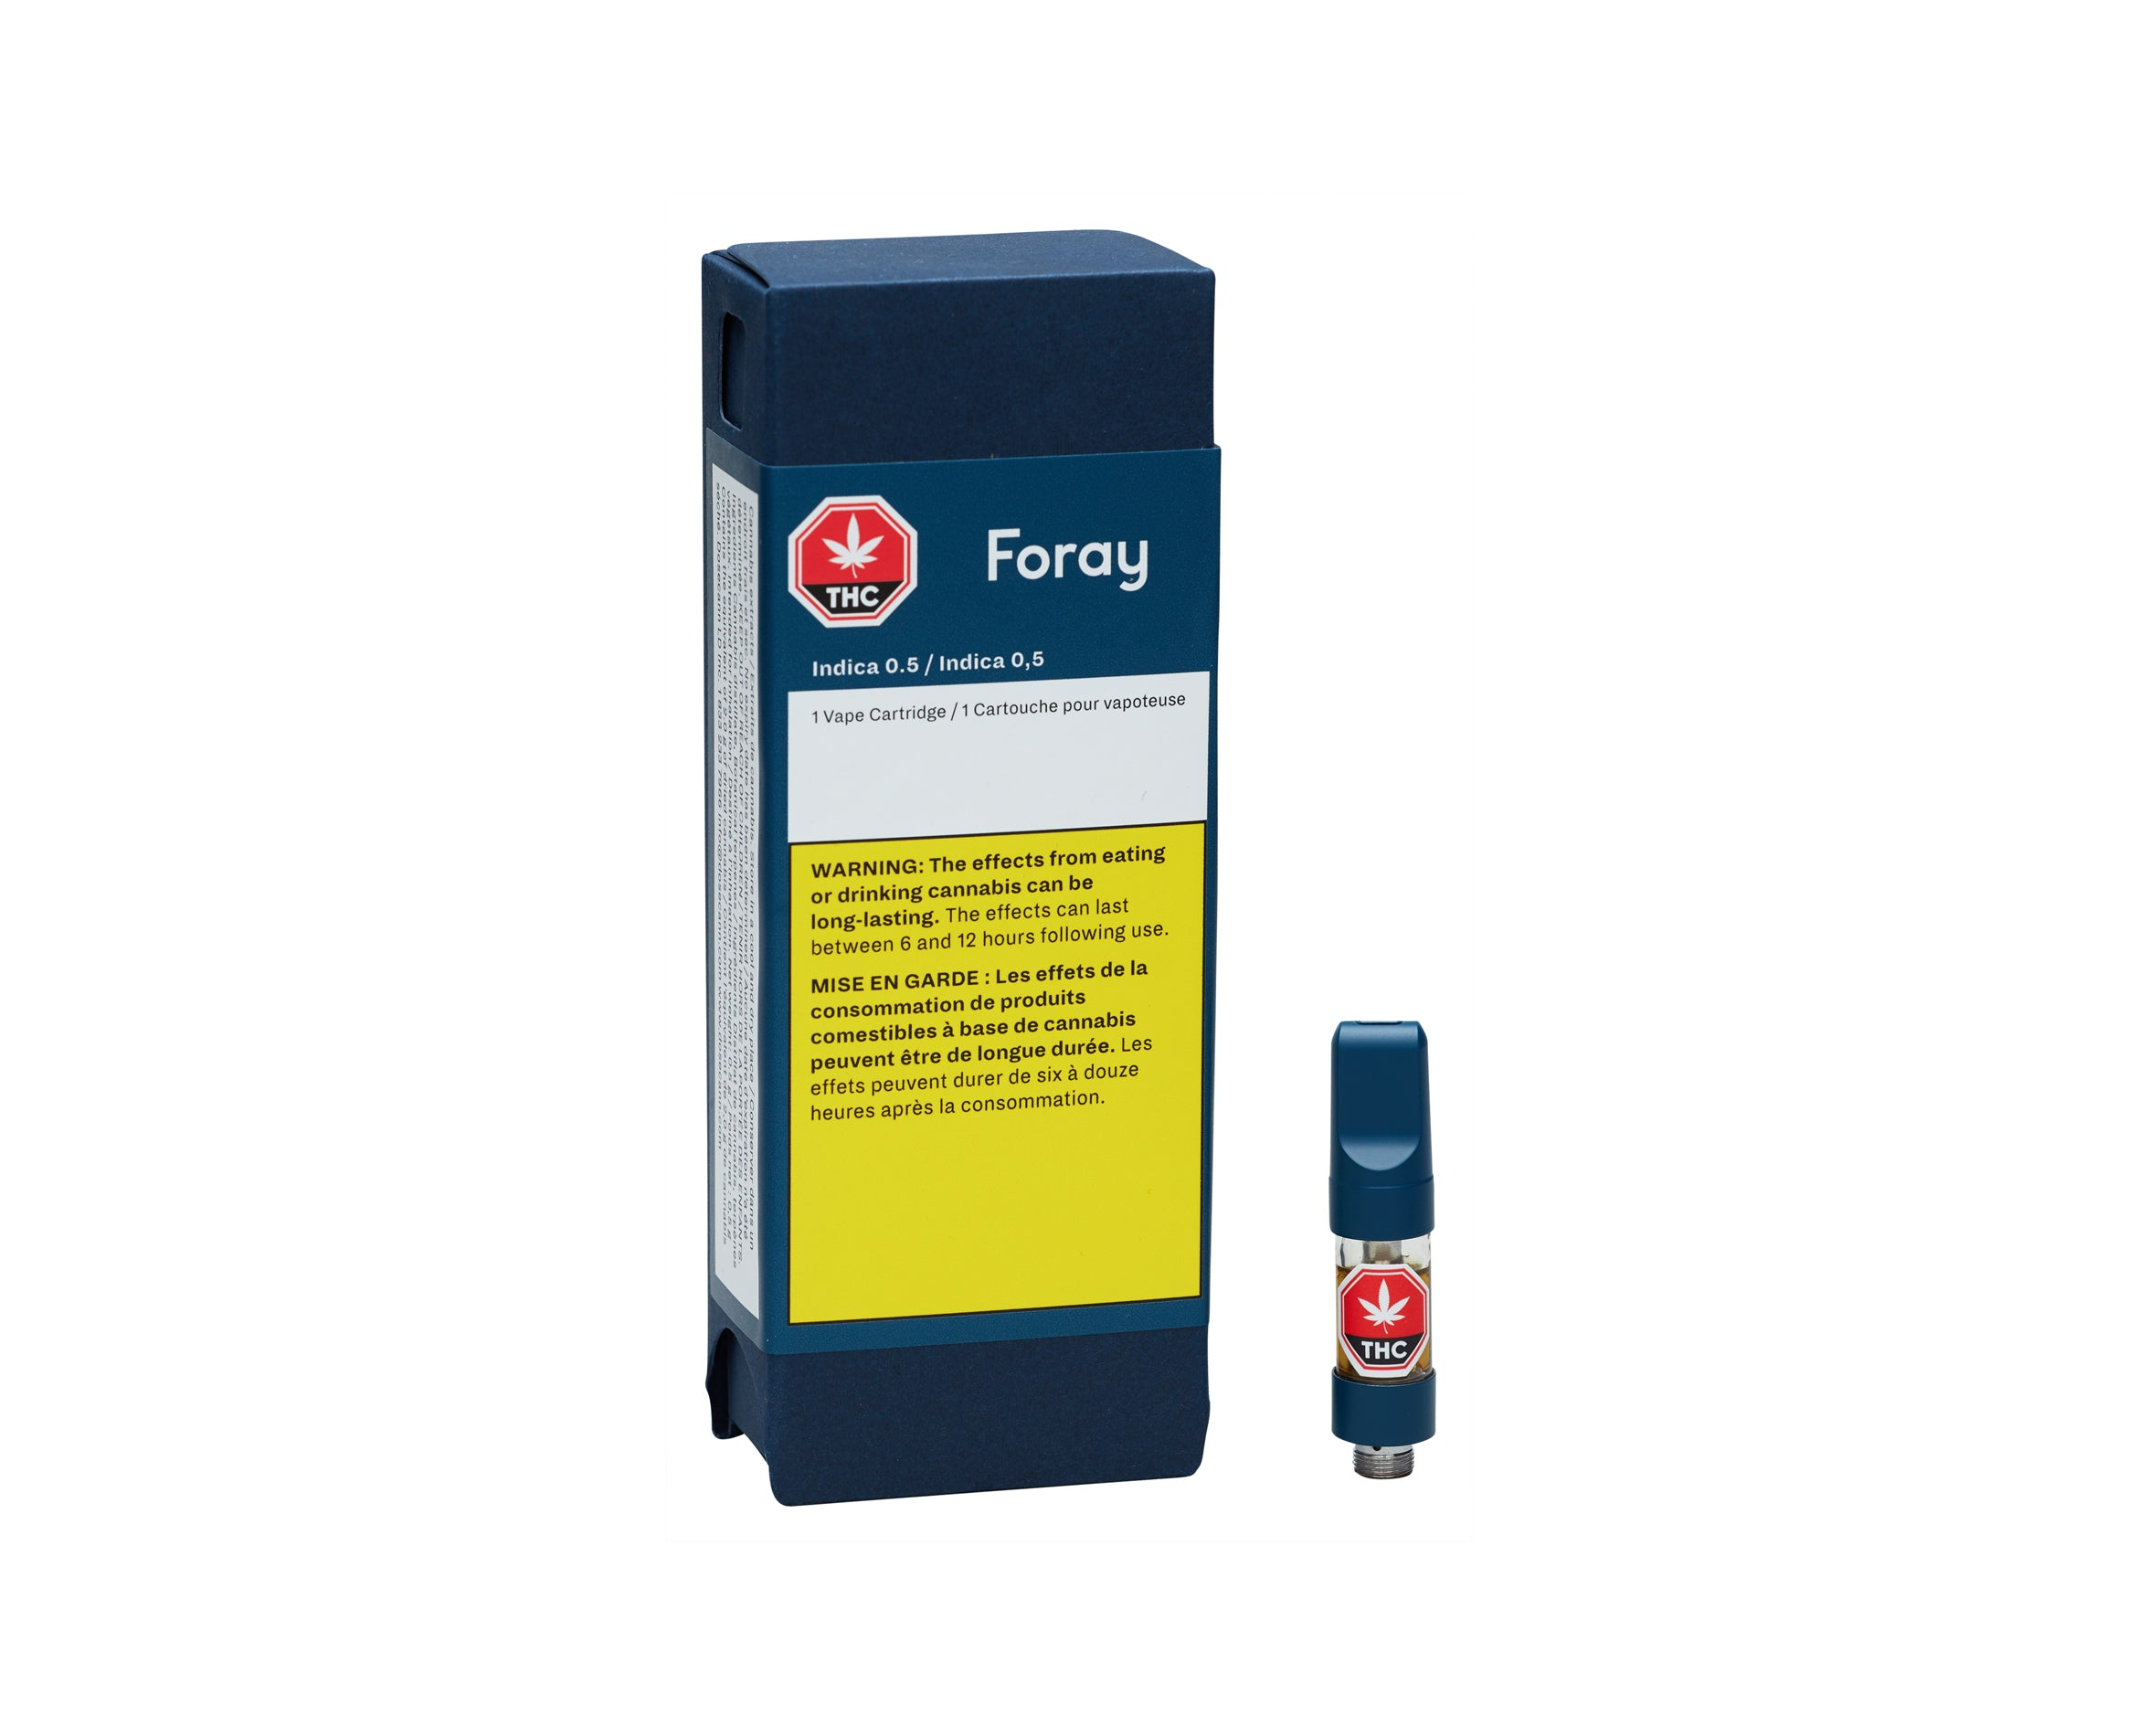 Foray Indica 510 Vape Cartridge